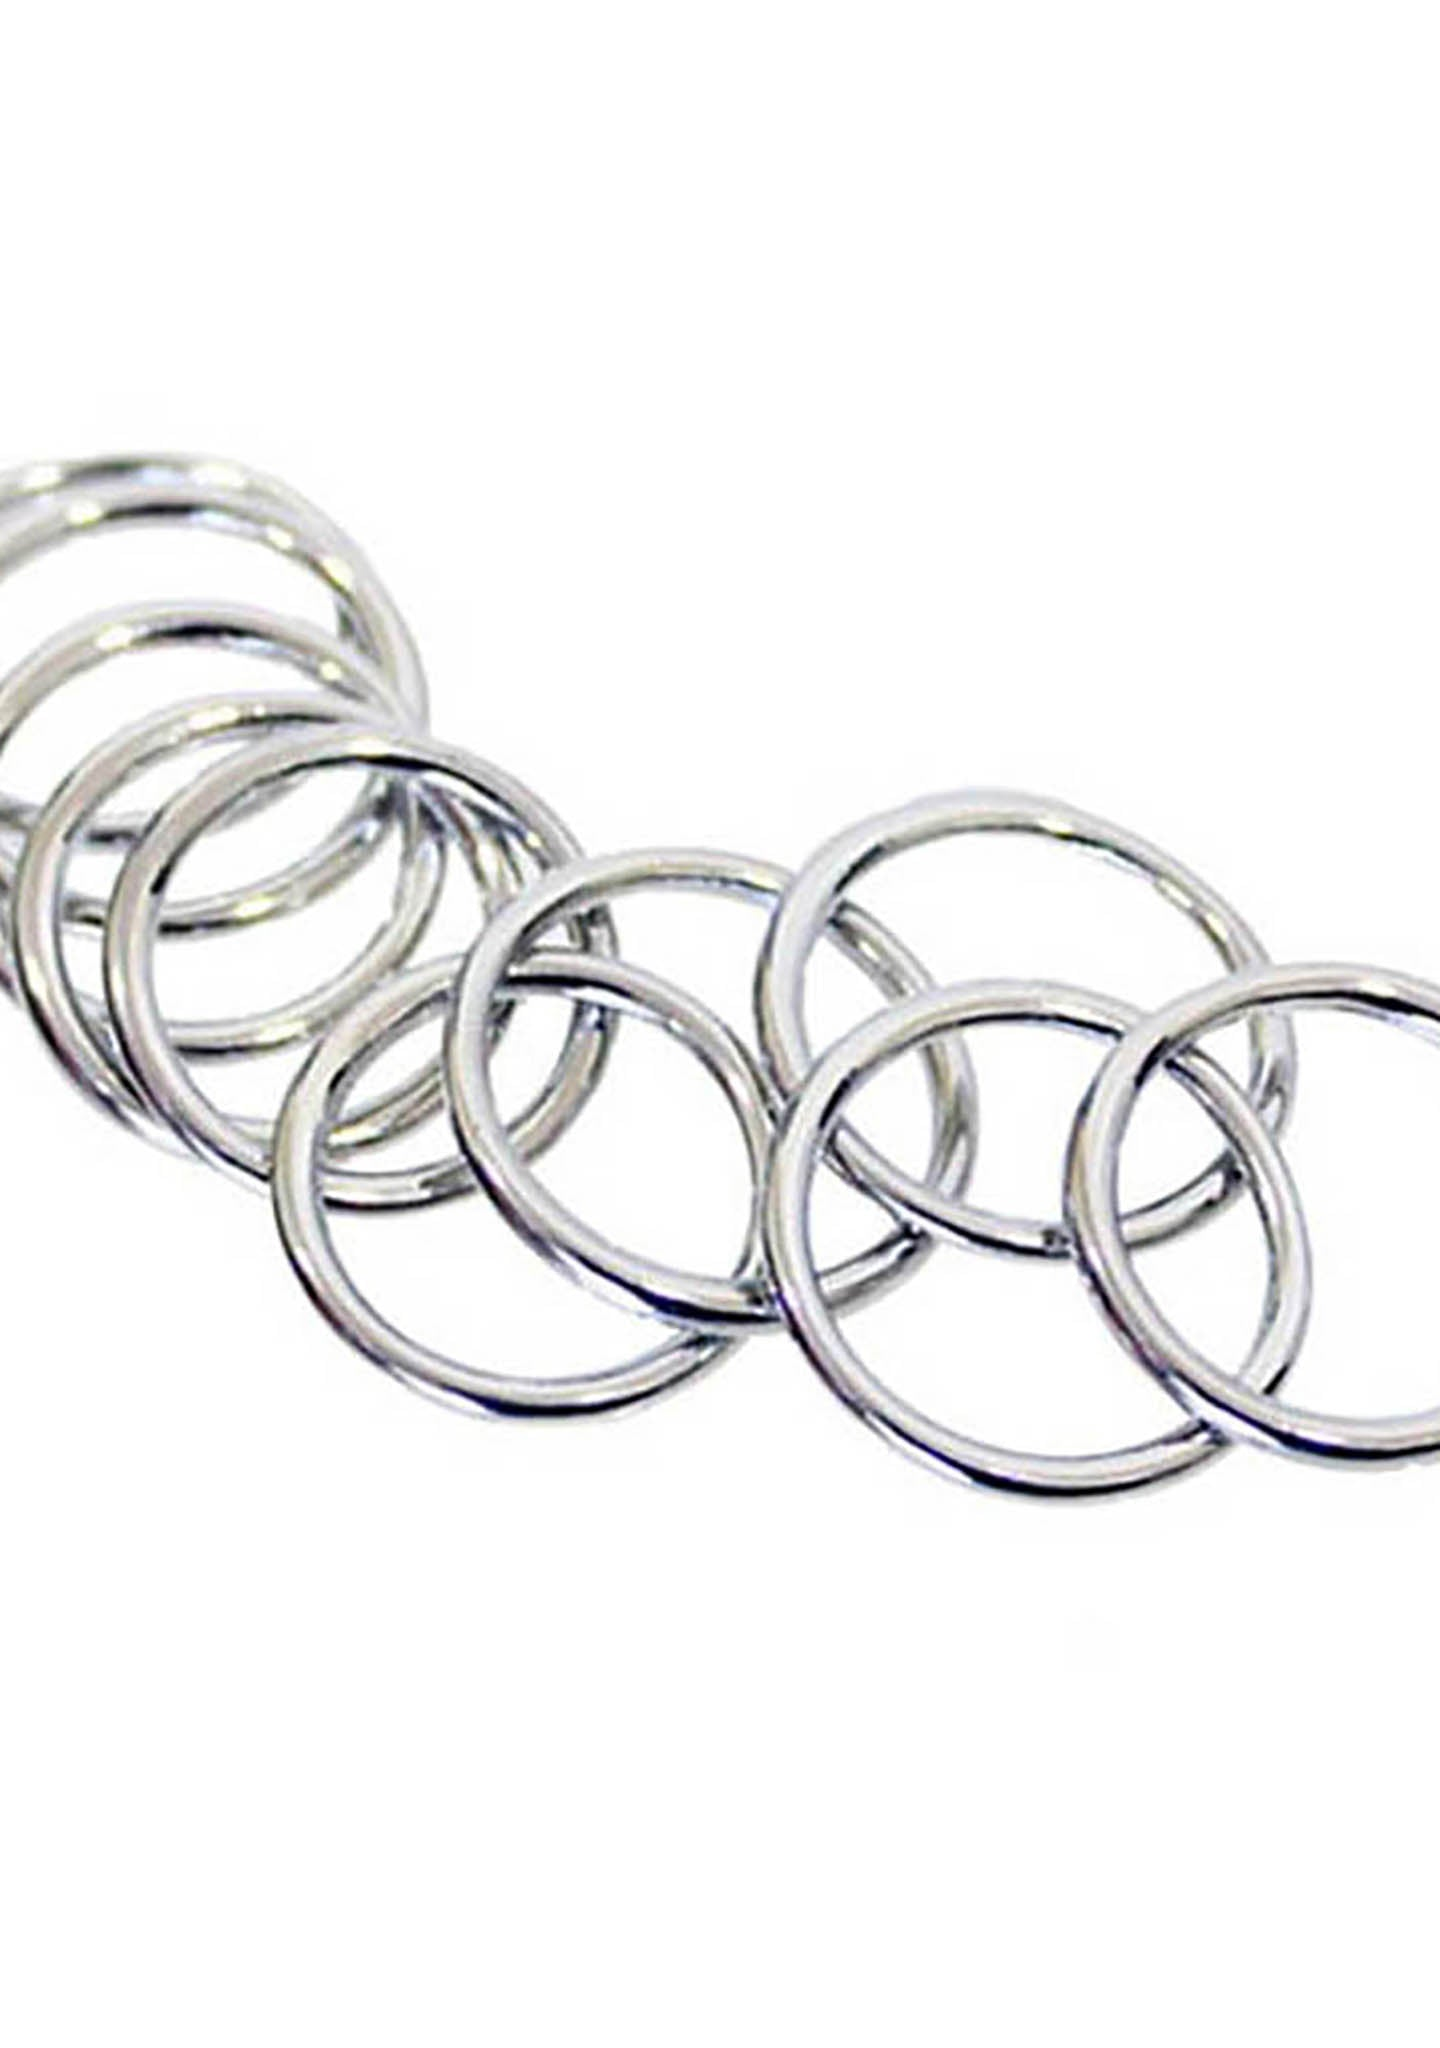 8 Other Reasons Easy E Rings in Silver (Sets of 10)